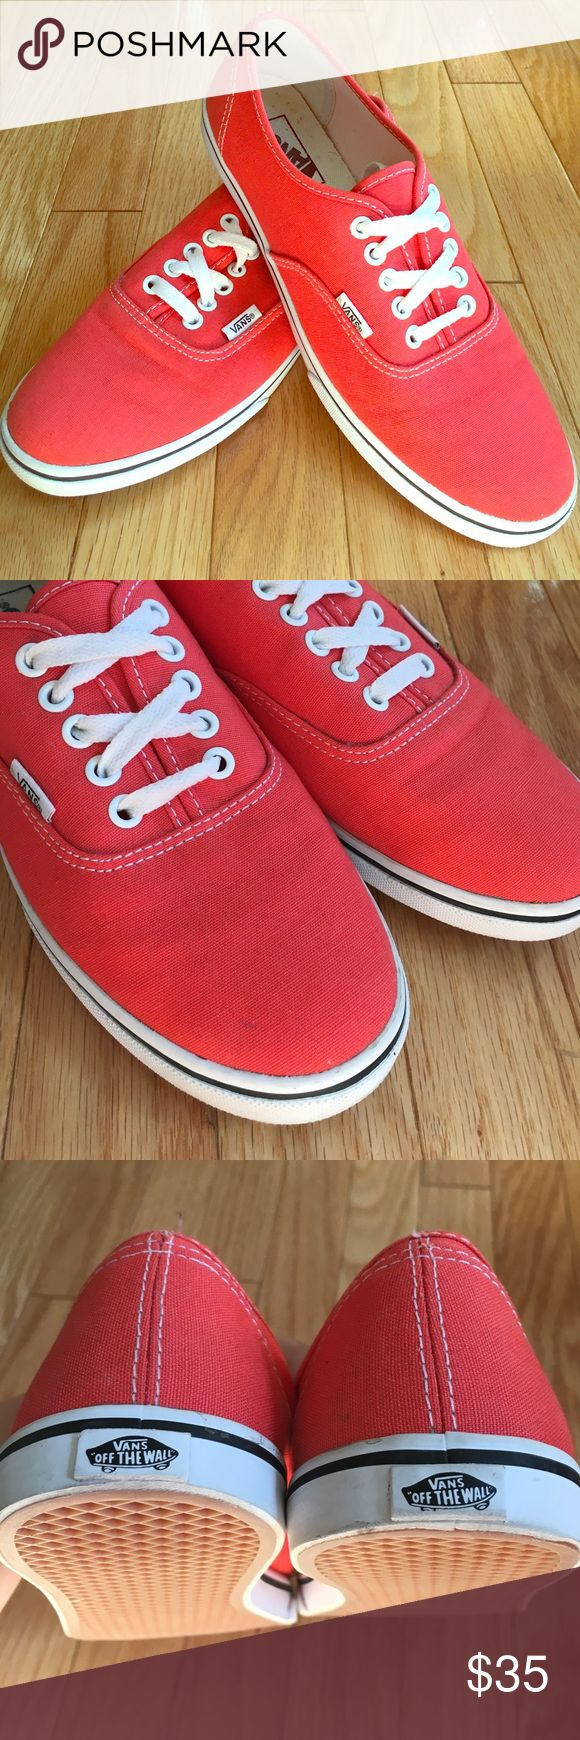 Coral vans🌅 Coral colored womens vans, only worn once! Great condition😊 (tiny little mark on the front shown) Vans Shoes Sneakers